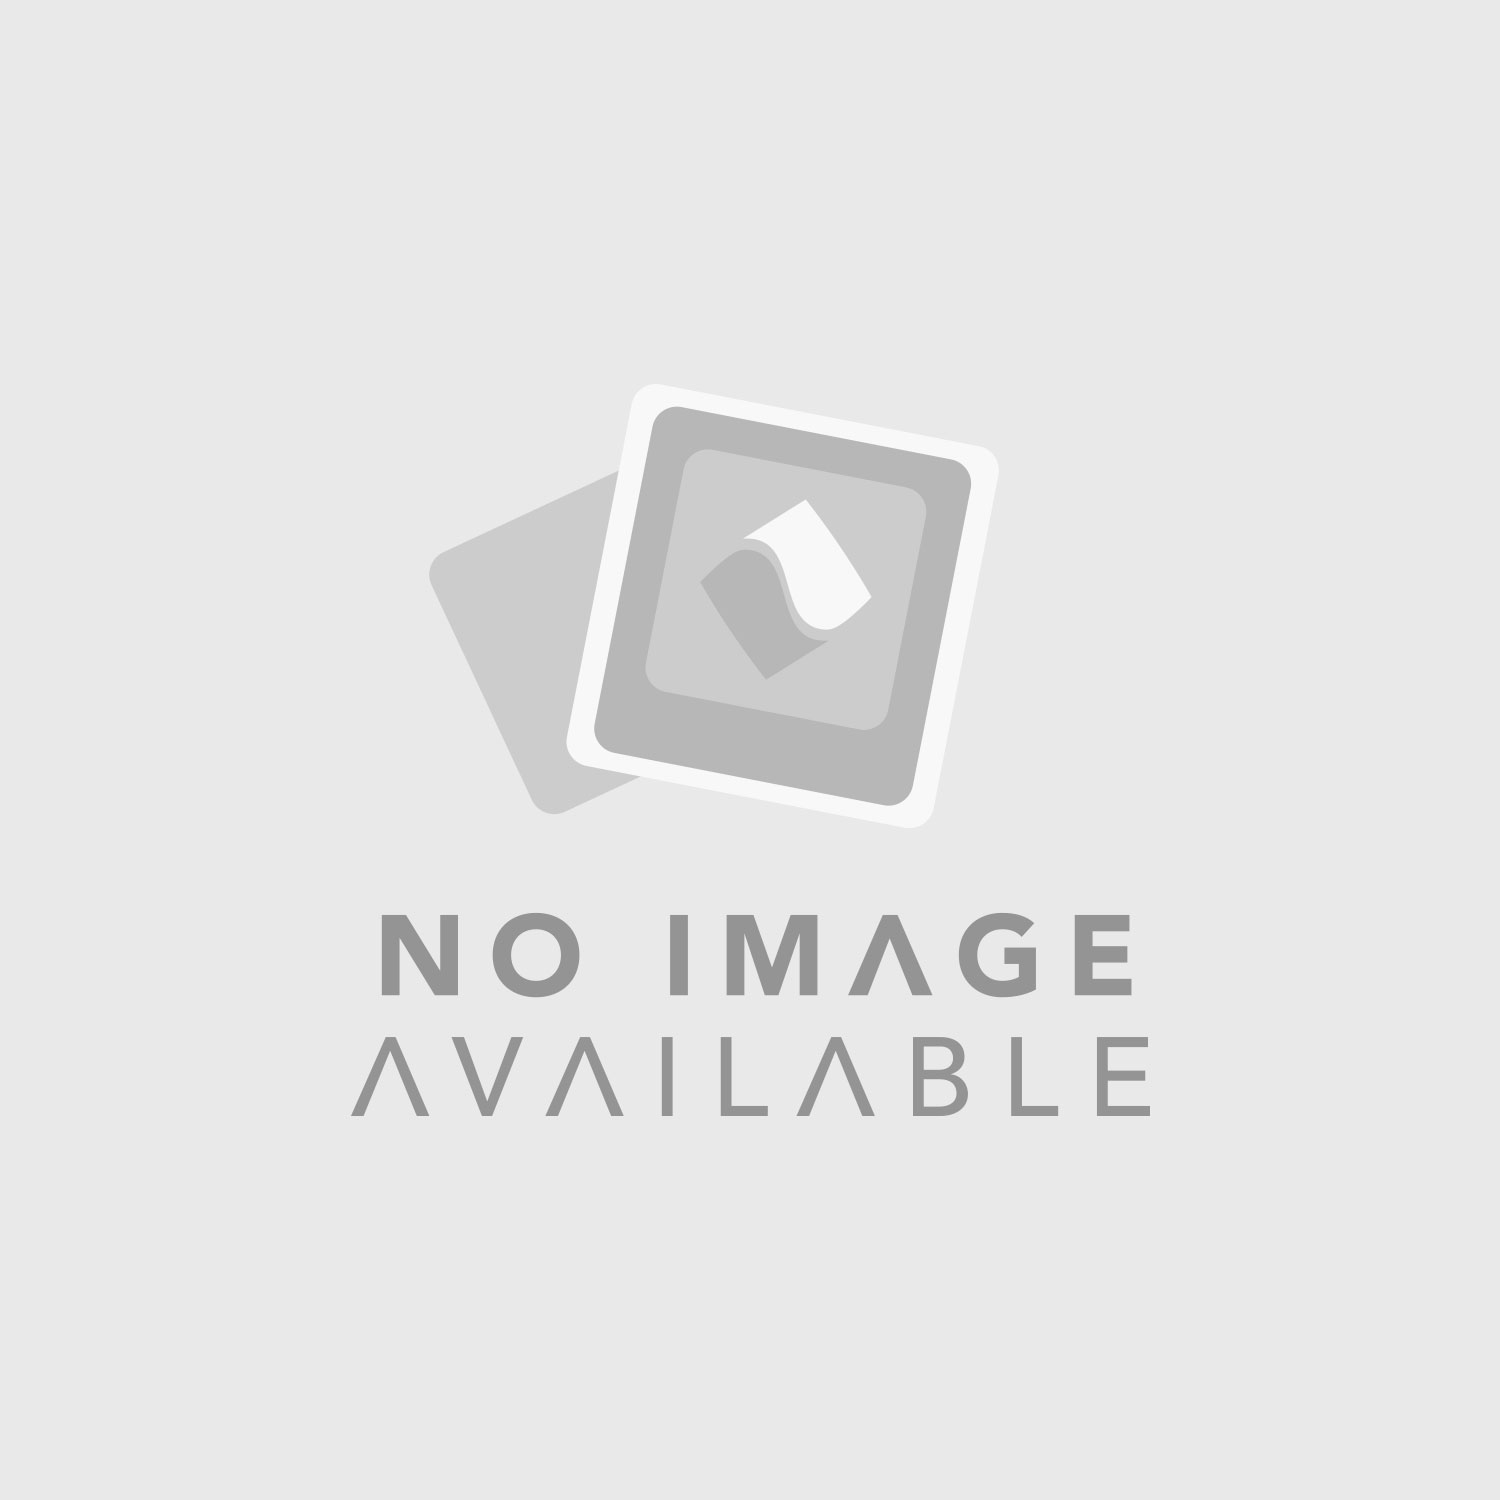 D'Addario EJ39 12-String Acoustic Guitar Strings (.012-.052)